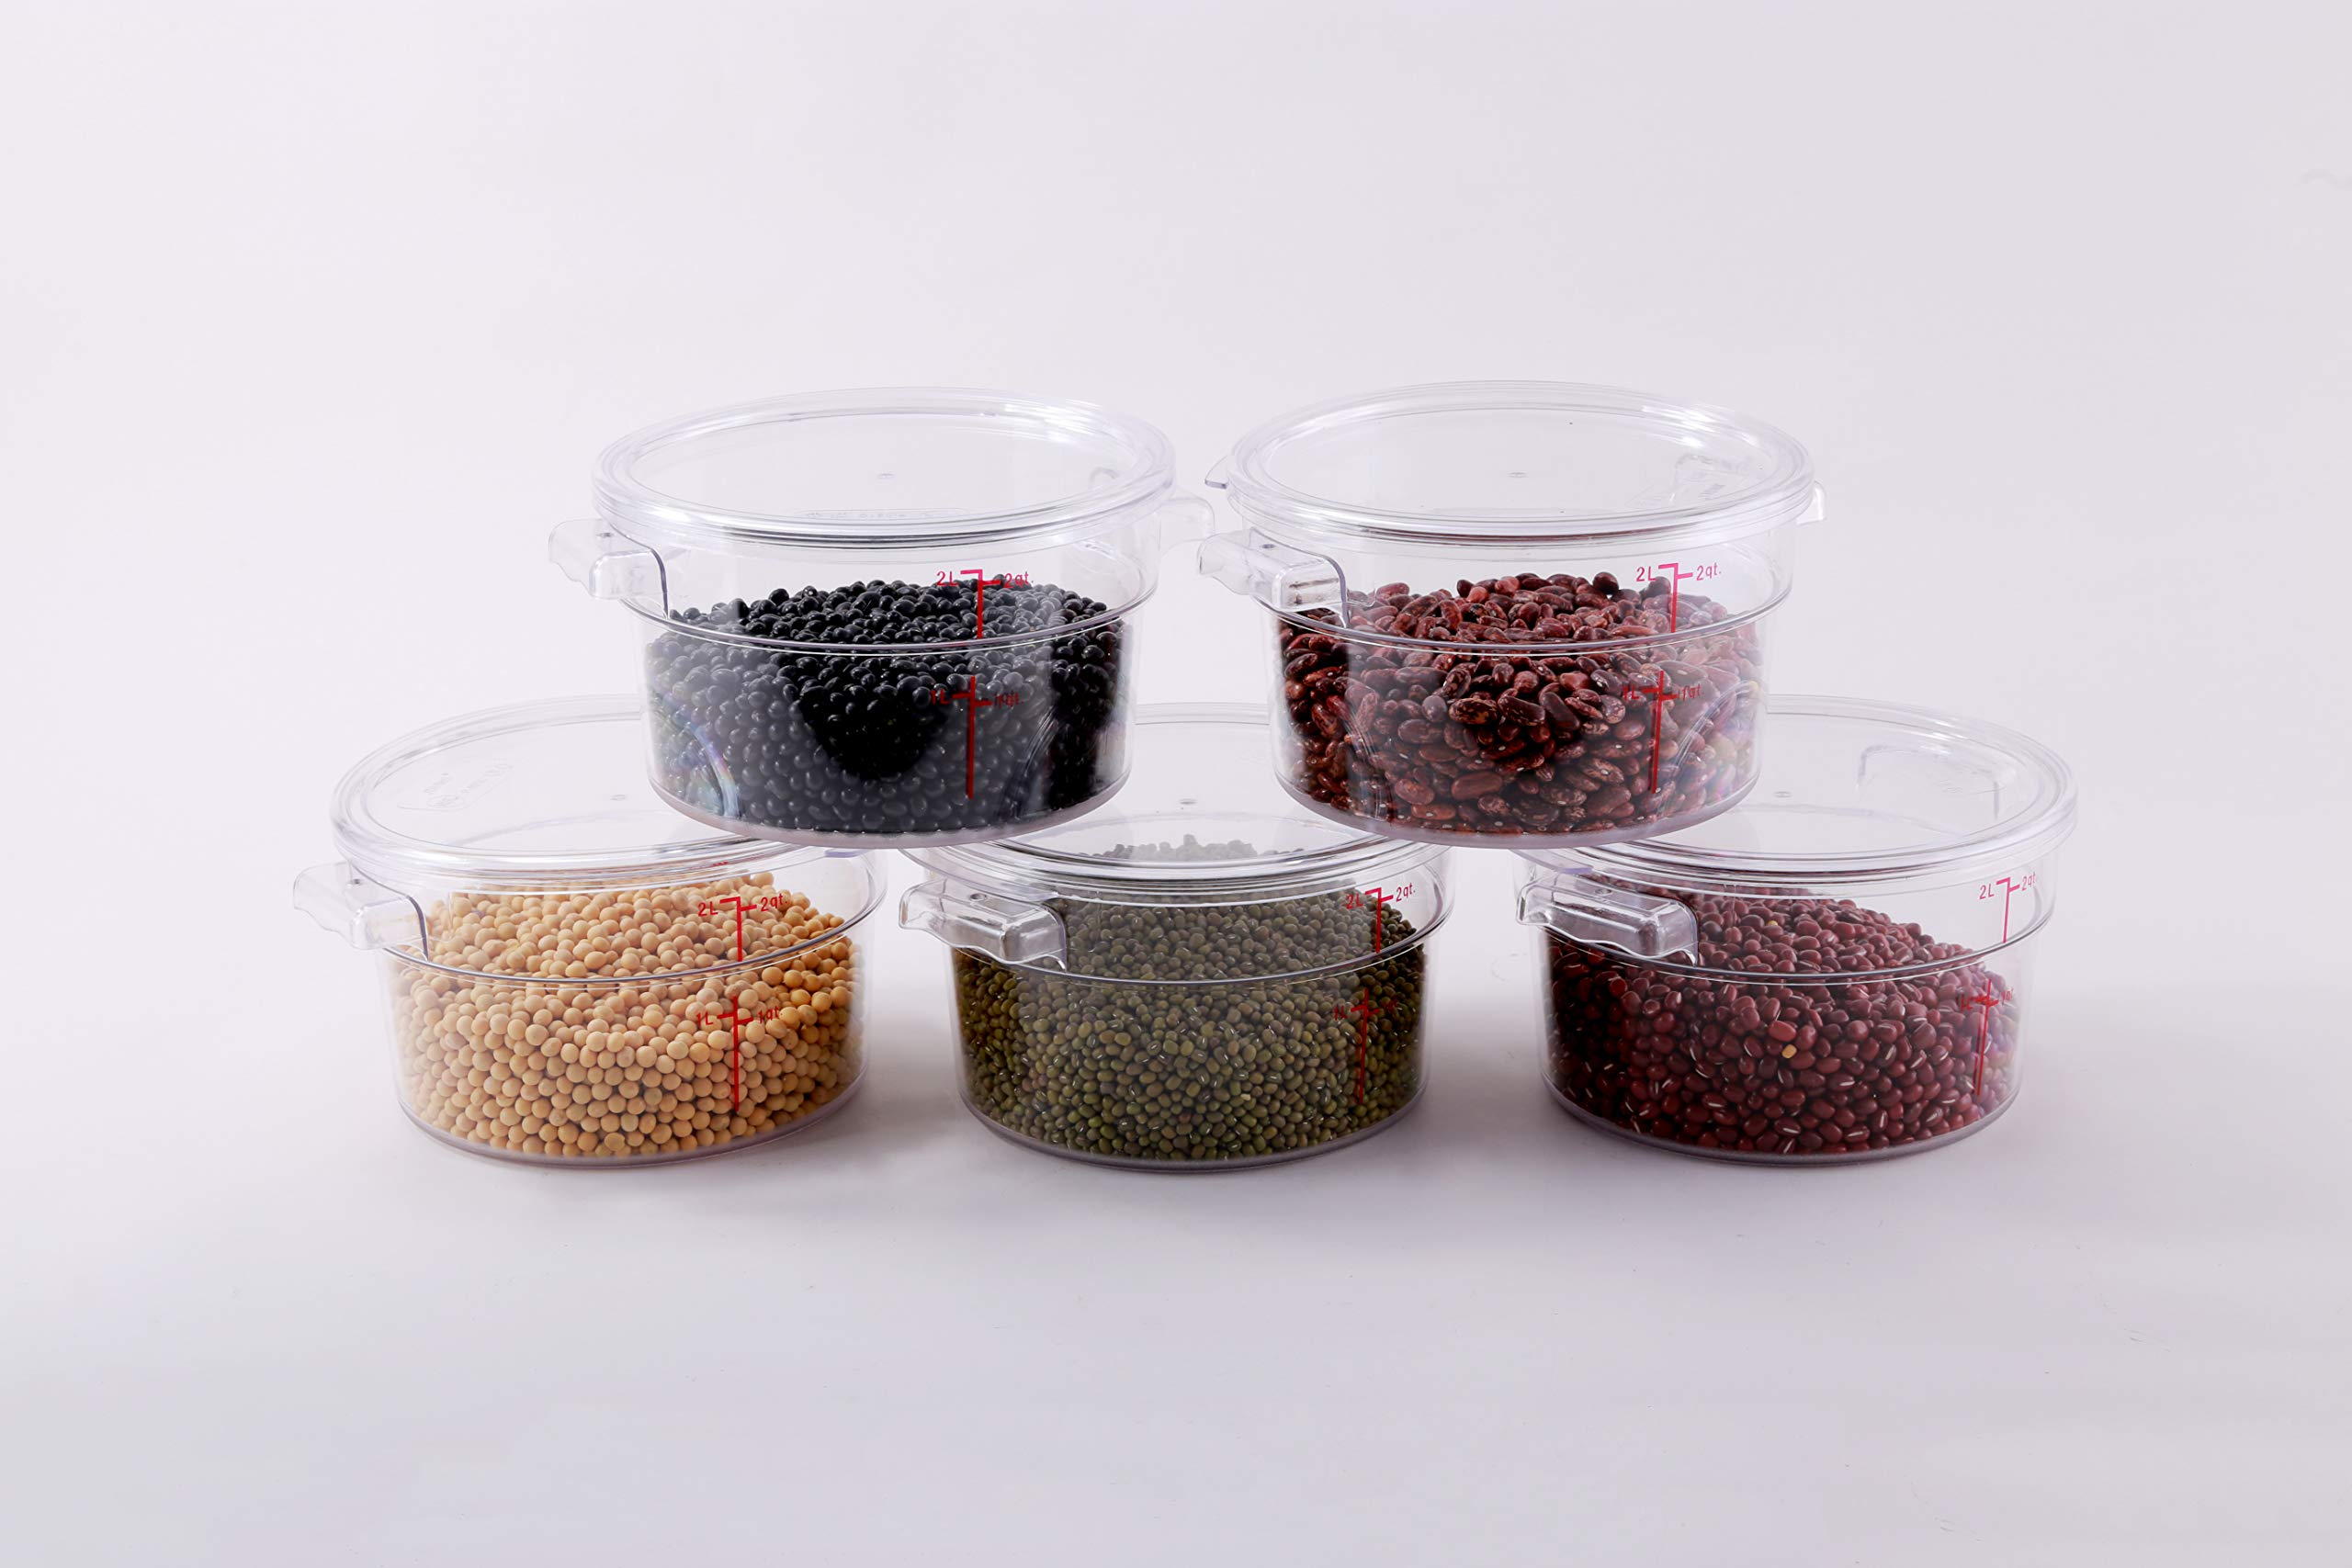 Hakka 2 Qt Commercial Grade Round Food Storage Containers with Lids,Polycarbonate,Clear - Case of 5 by HAKKA FOOD PROCESSING (Image #2)